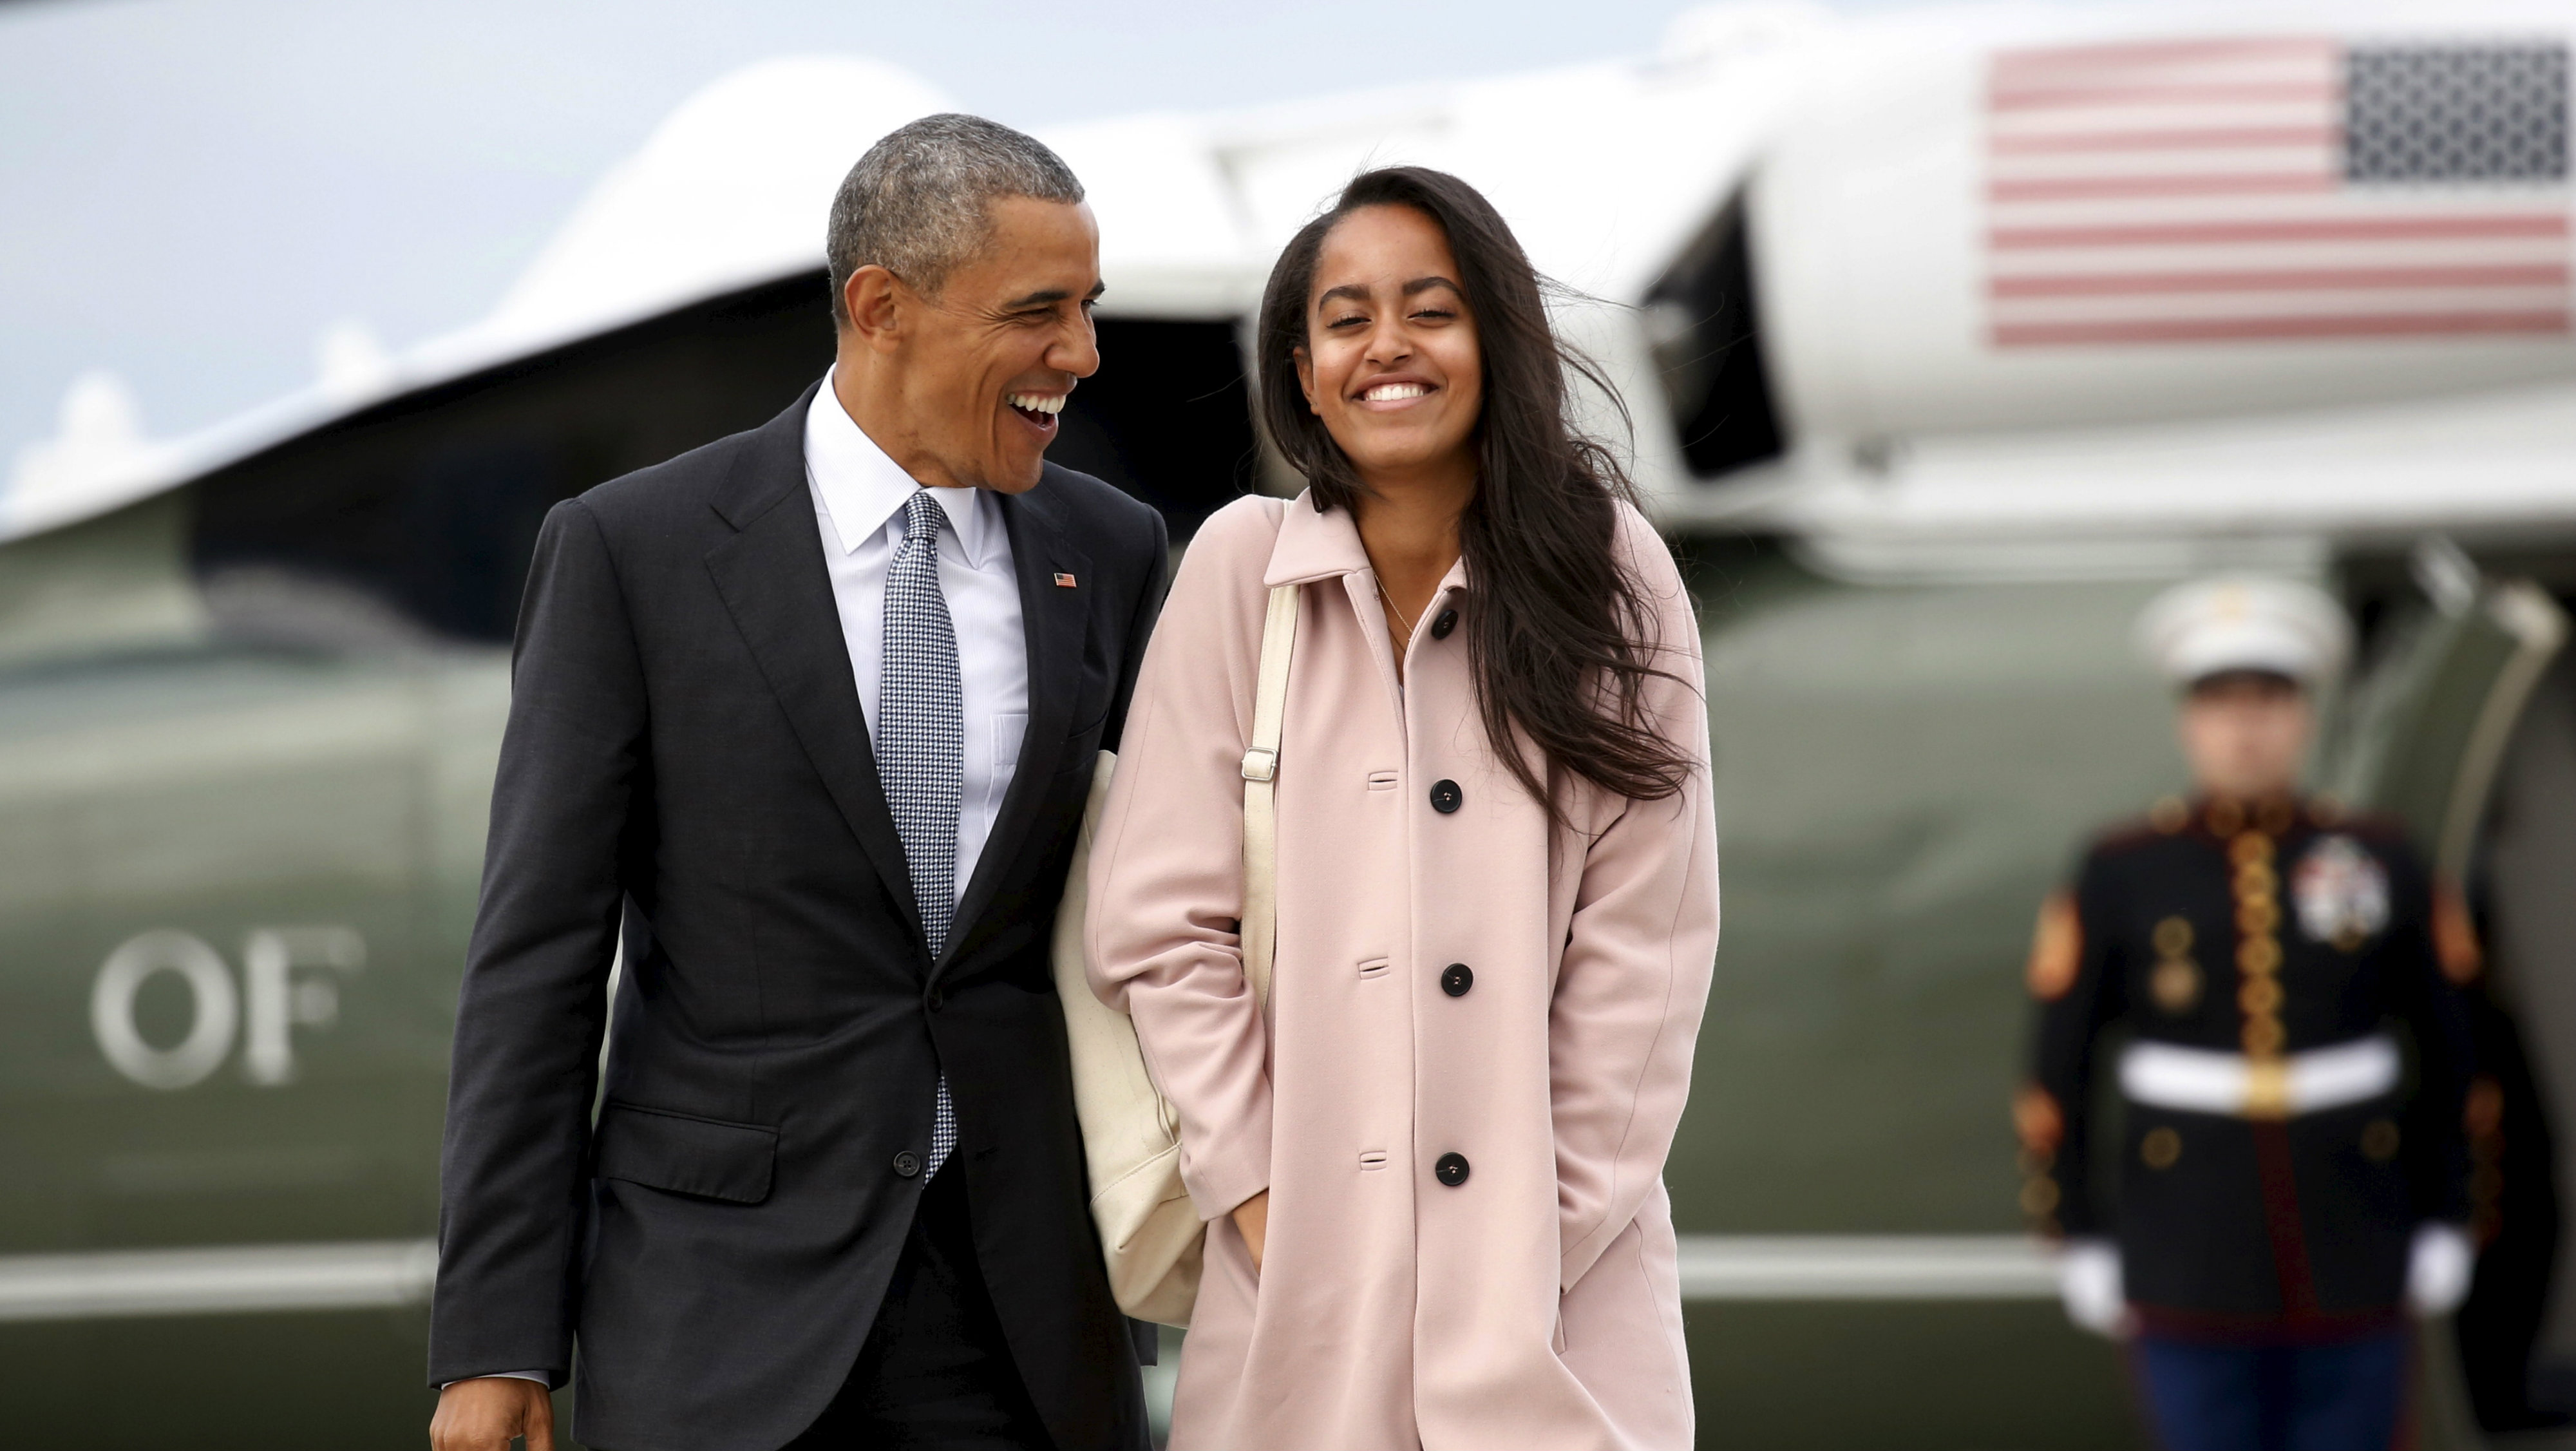 Malia Obama will spend her gap year before Harvard learning